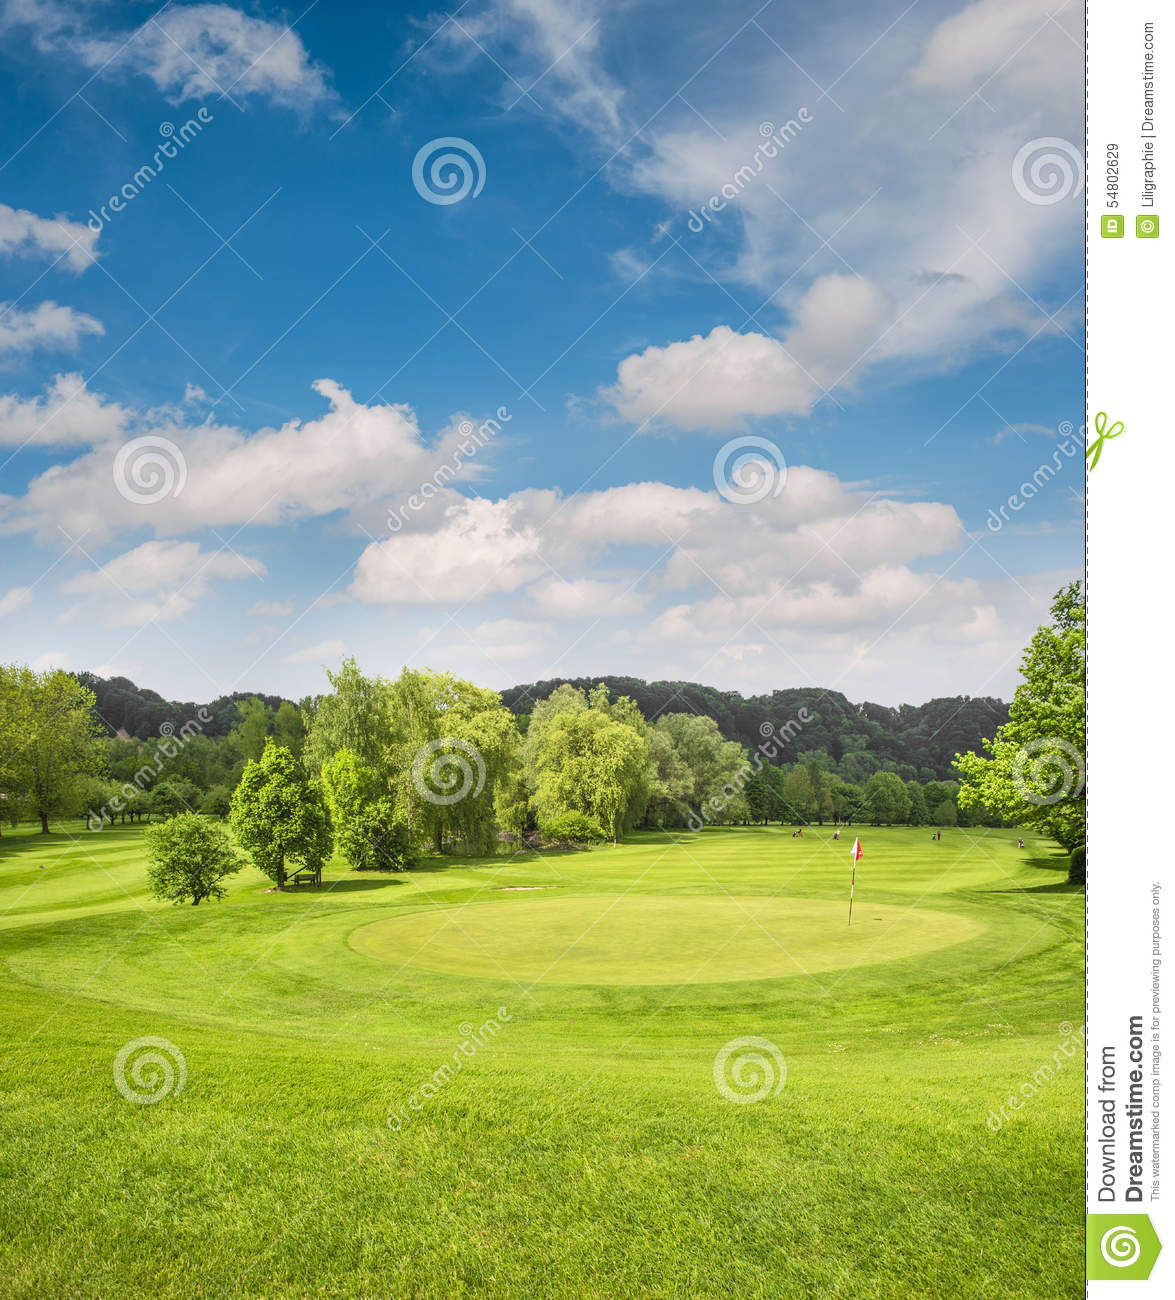 Golf Course Landscape. Field With Green Grass, Trees, Blue ...